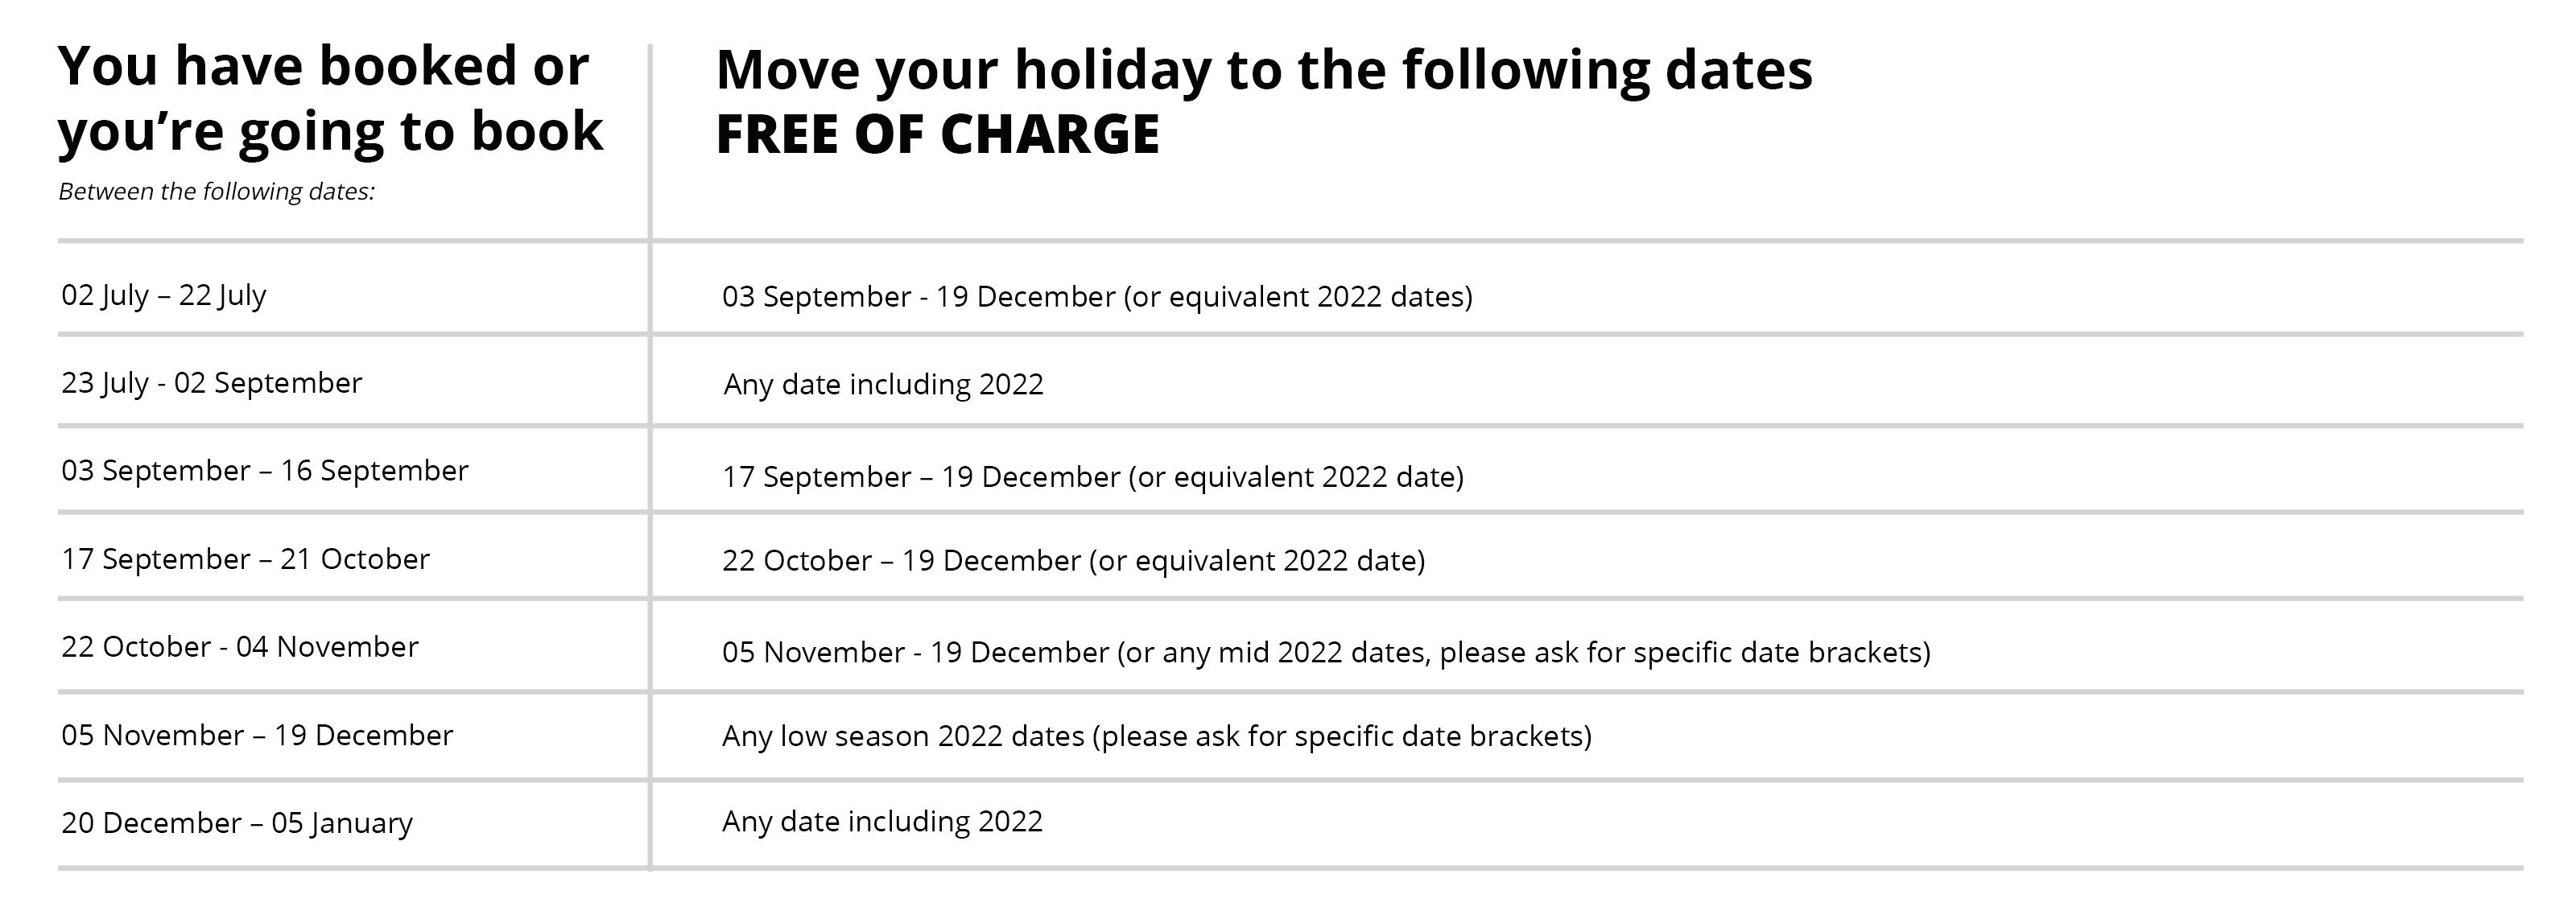 Booking Guarantee Date Changes